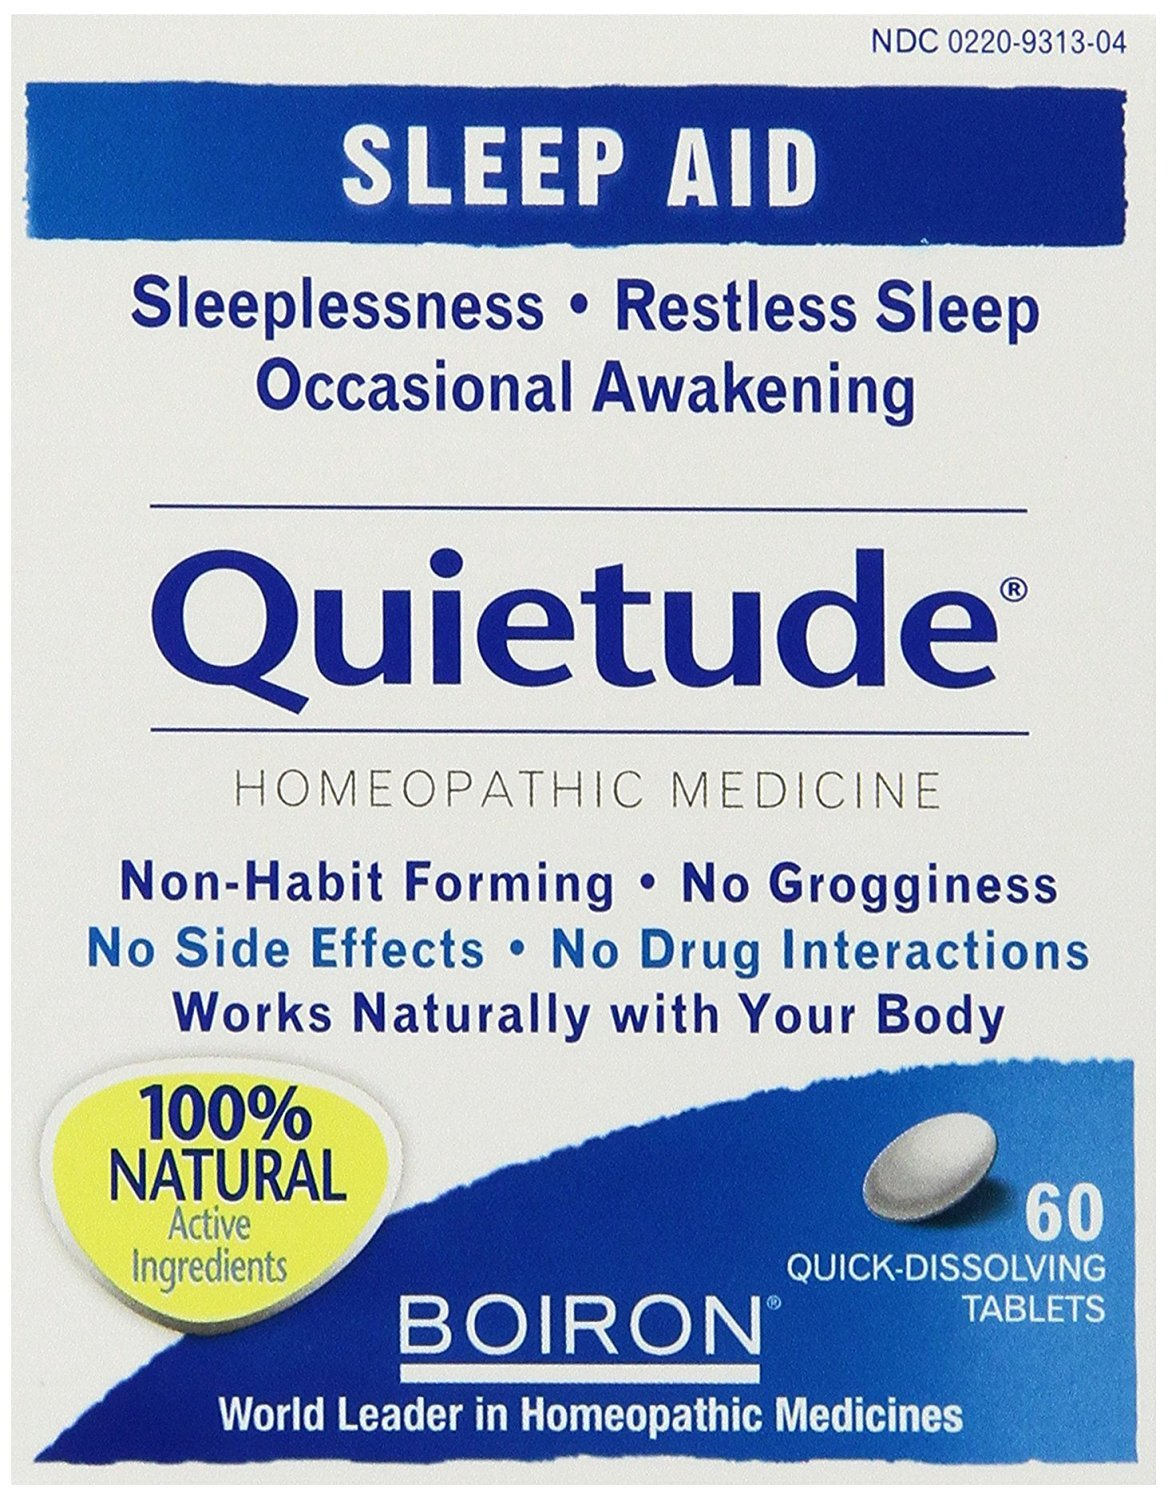 Boiron Quietude - 60 tabs (Pack of 4)